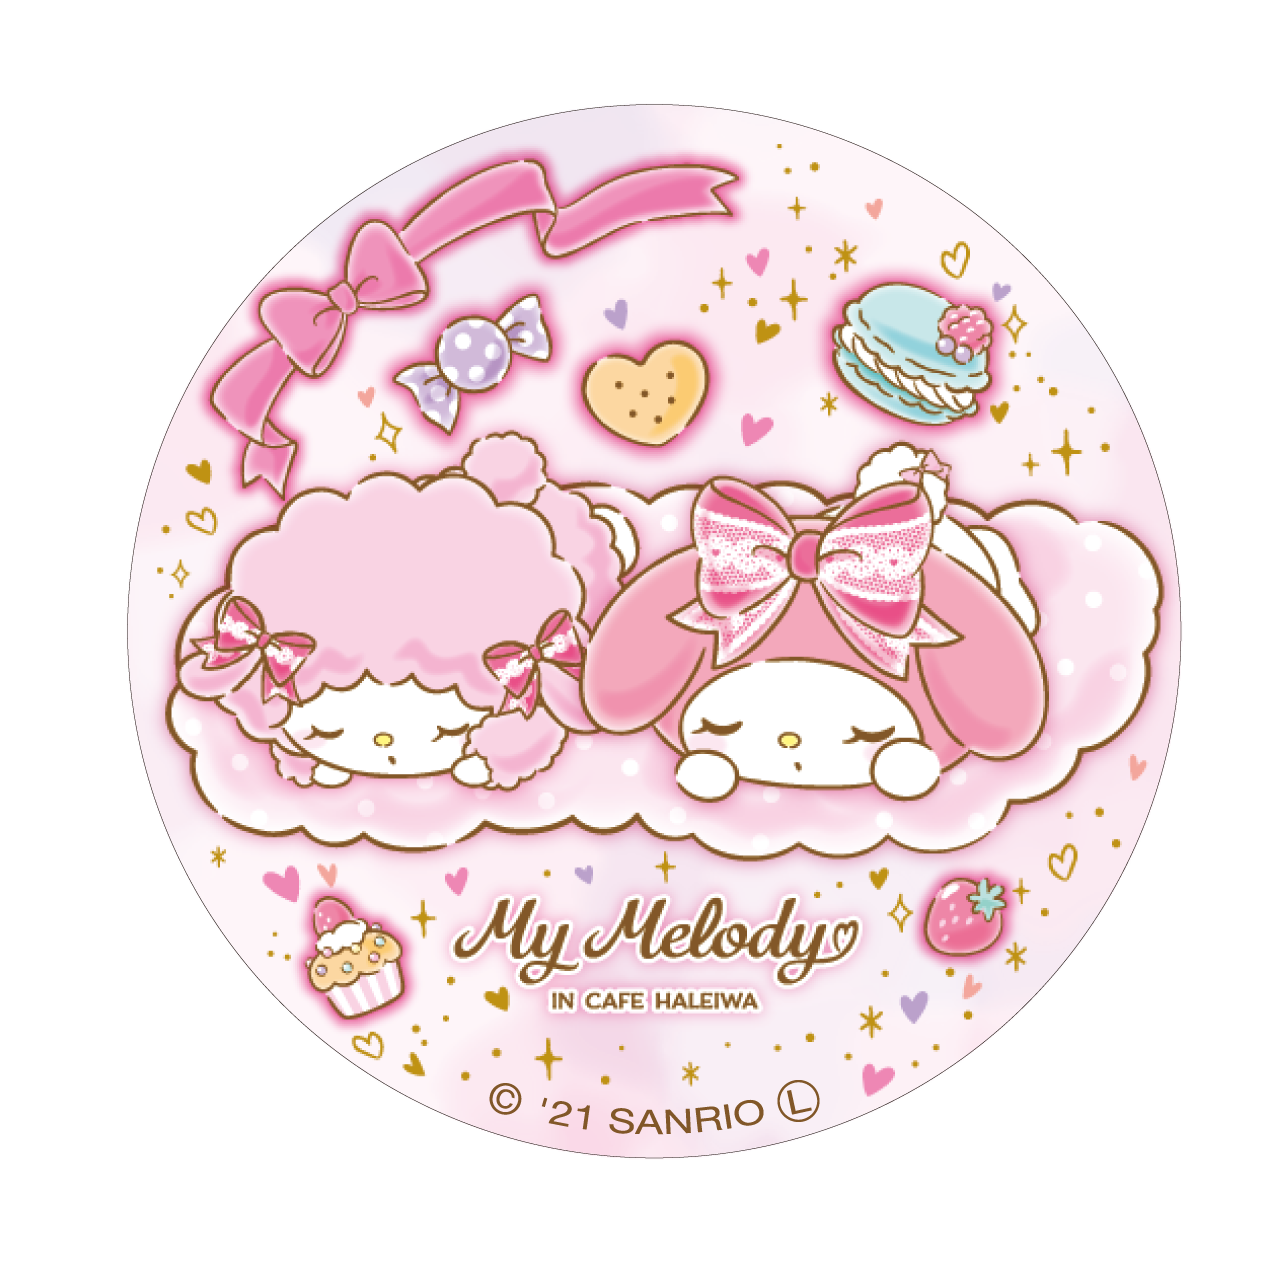 My Melody Cafe 缶バッジ(おひるね)